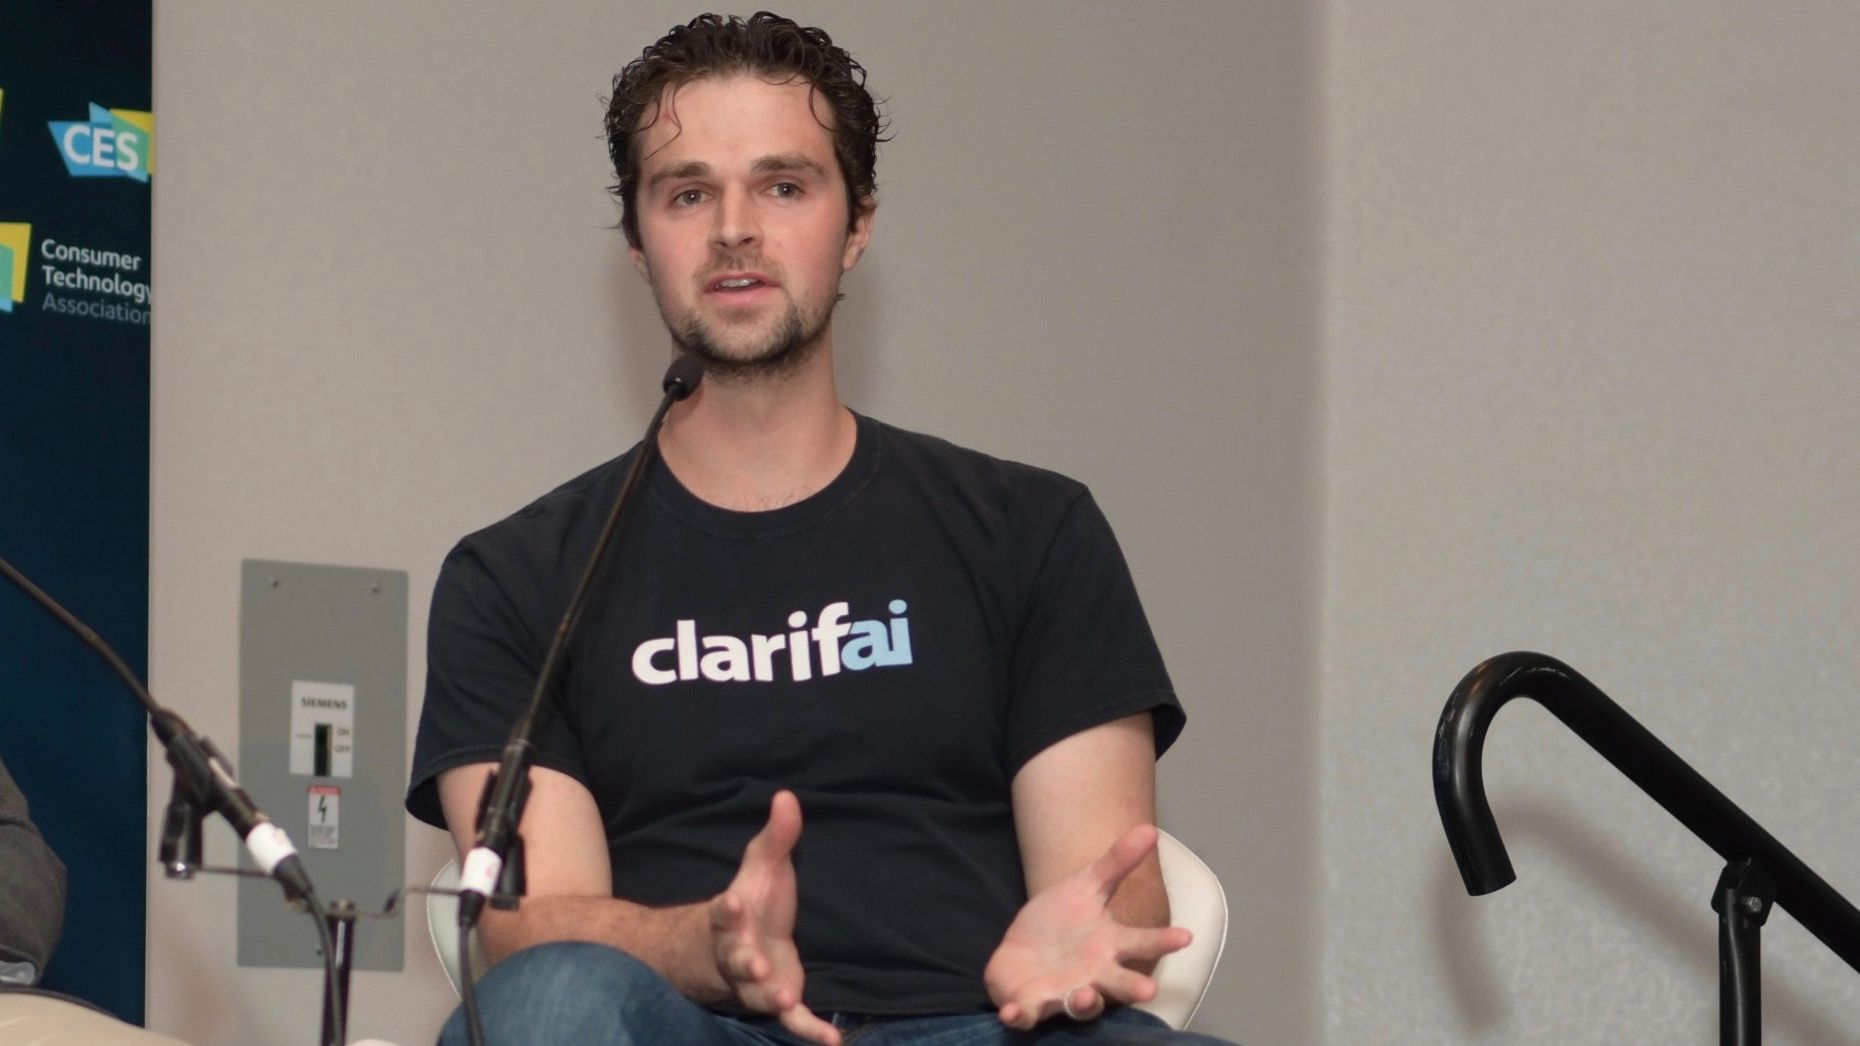 Clarifai founder Matt Zeiler. Photo by Flickr/ETC-USC.